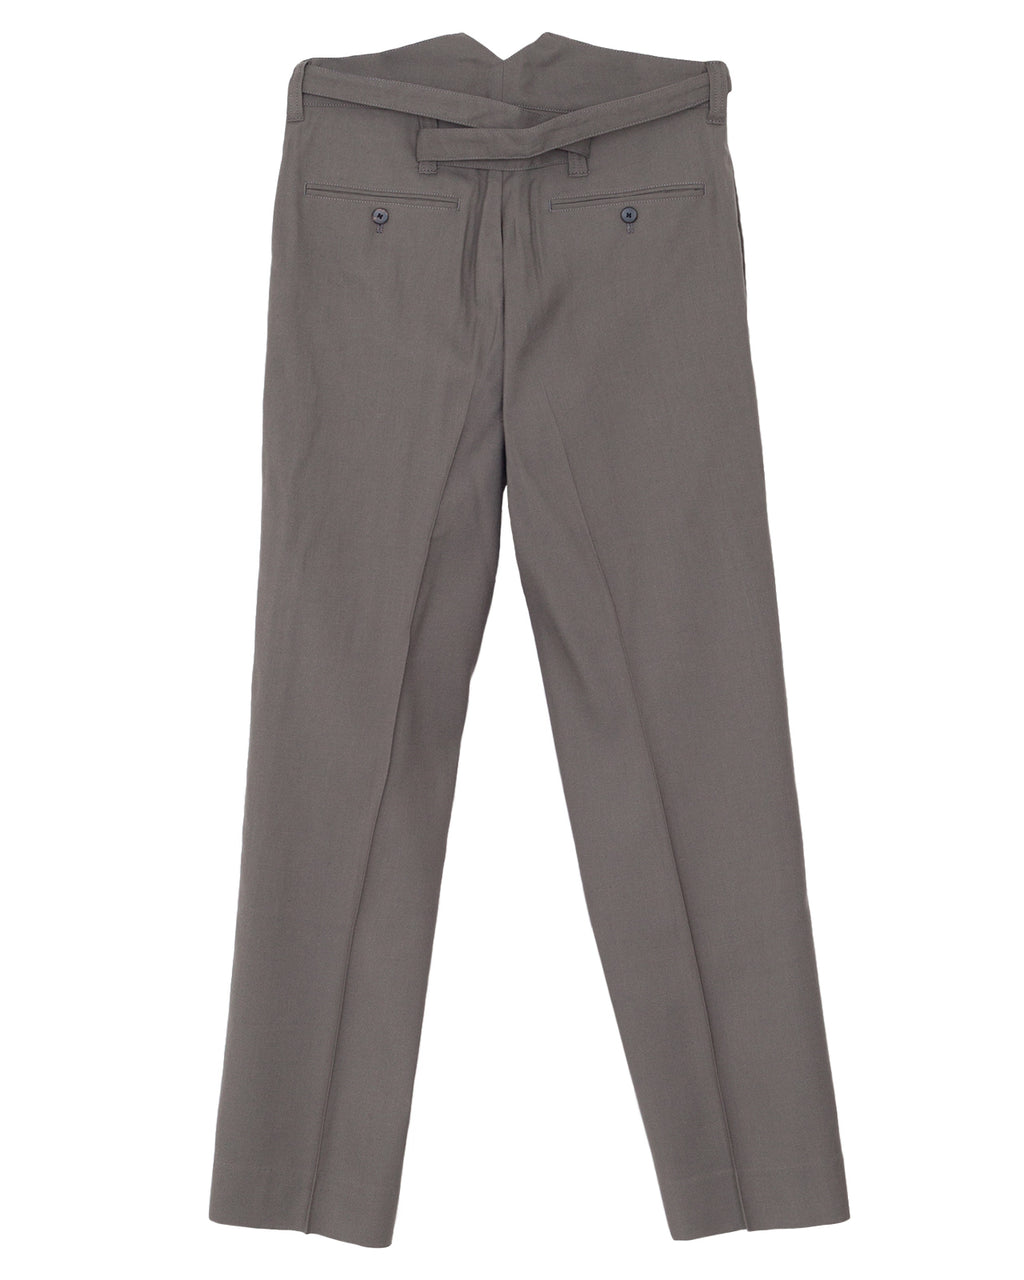 Visvim Hakama Pants, Grey